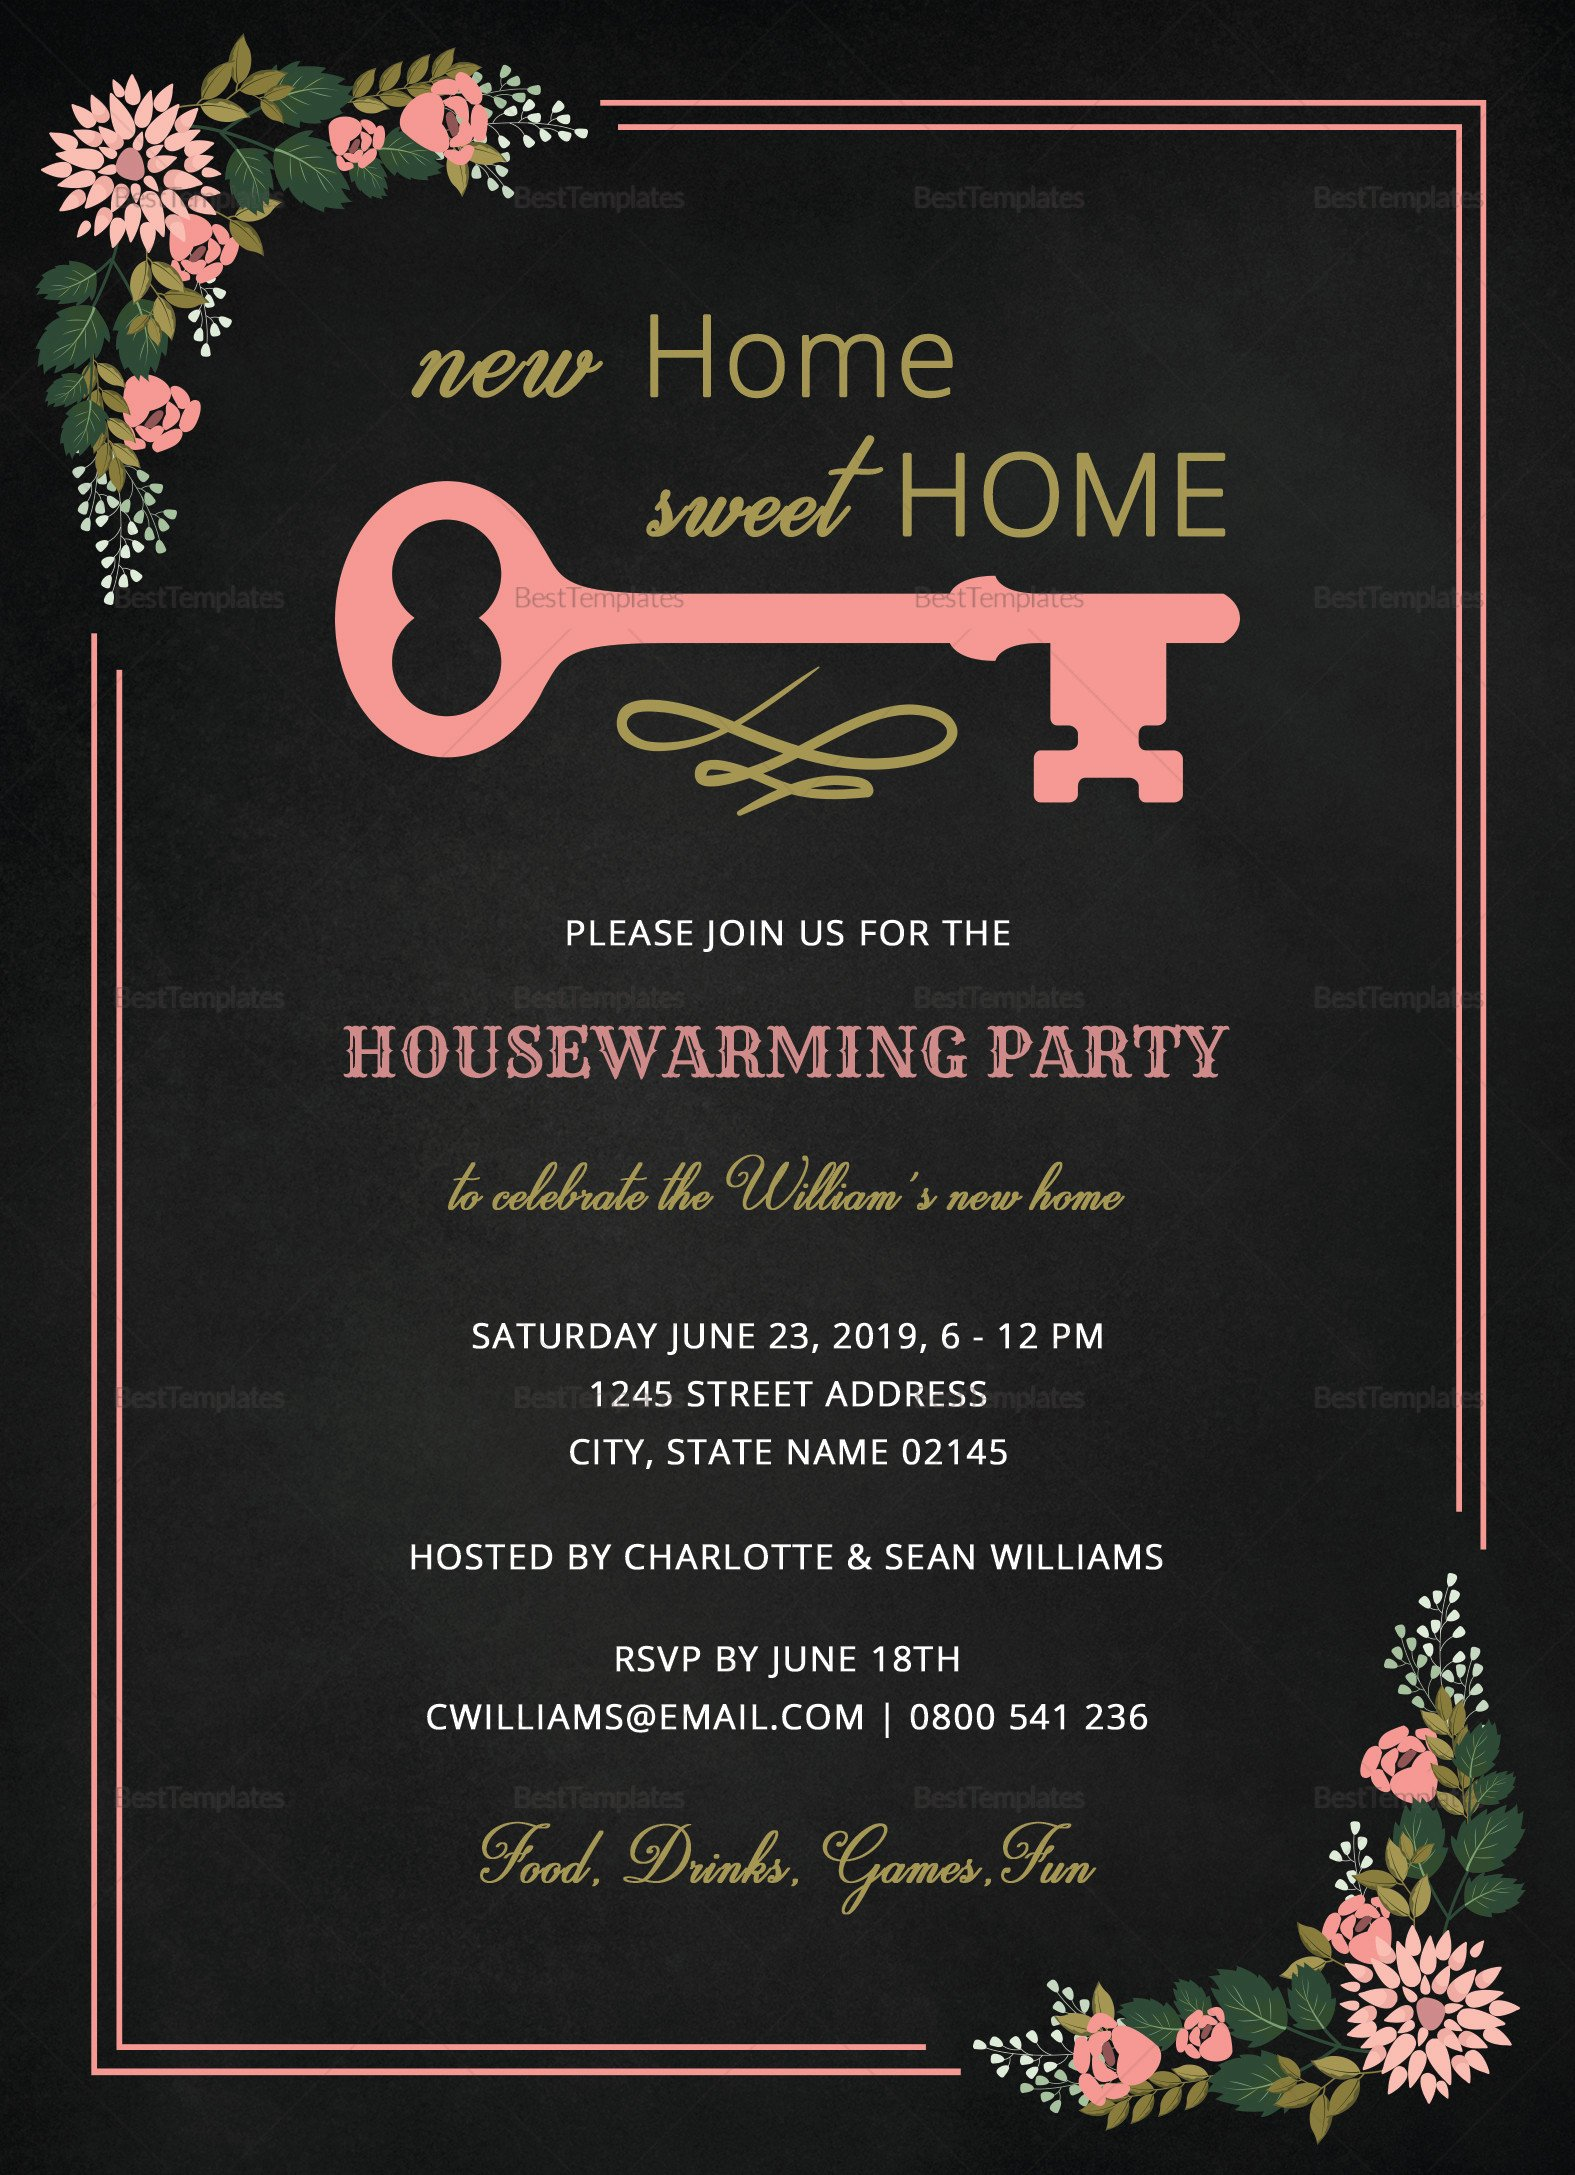 Housewarming Invitation Template Microsoft Word Chalkboard Housewarming Invitation Design Template In Word